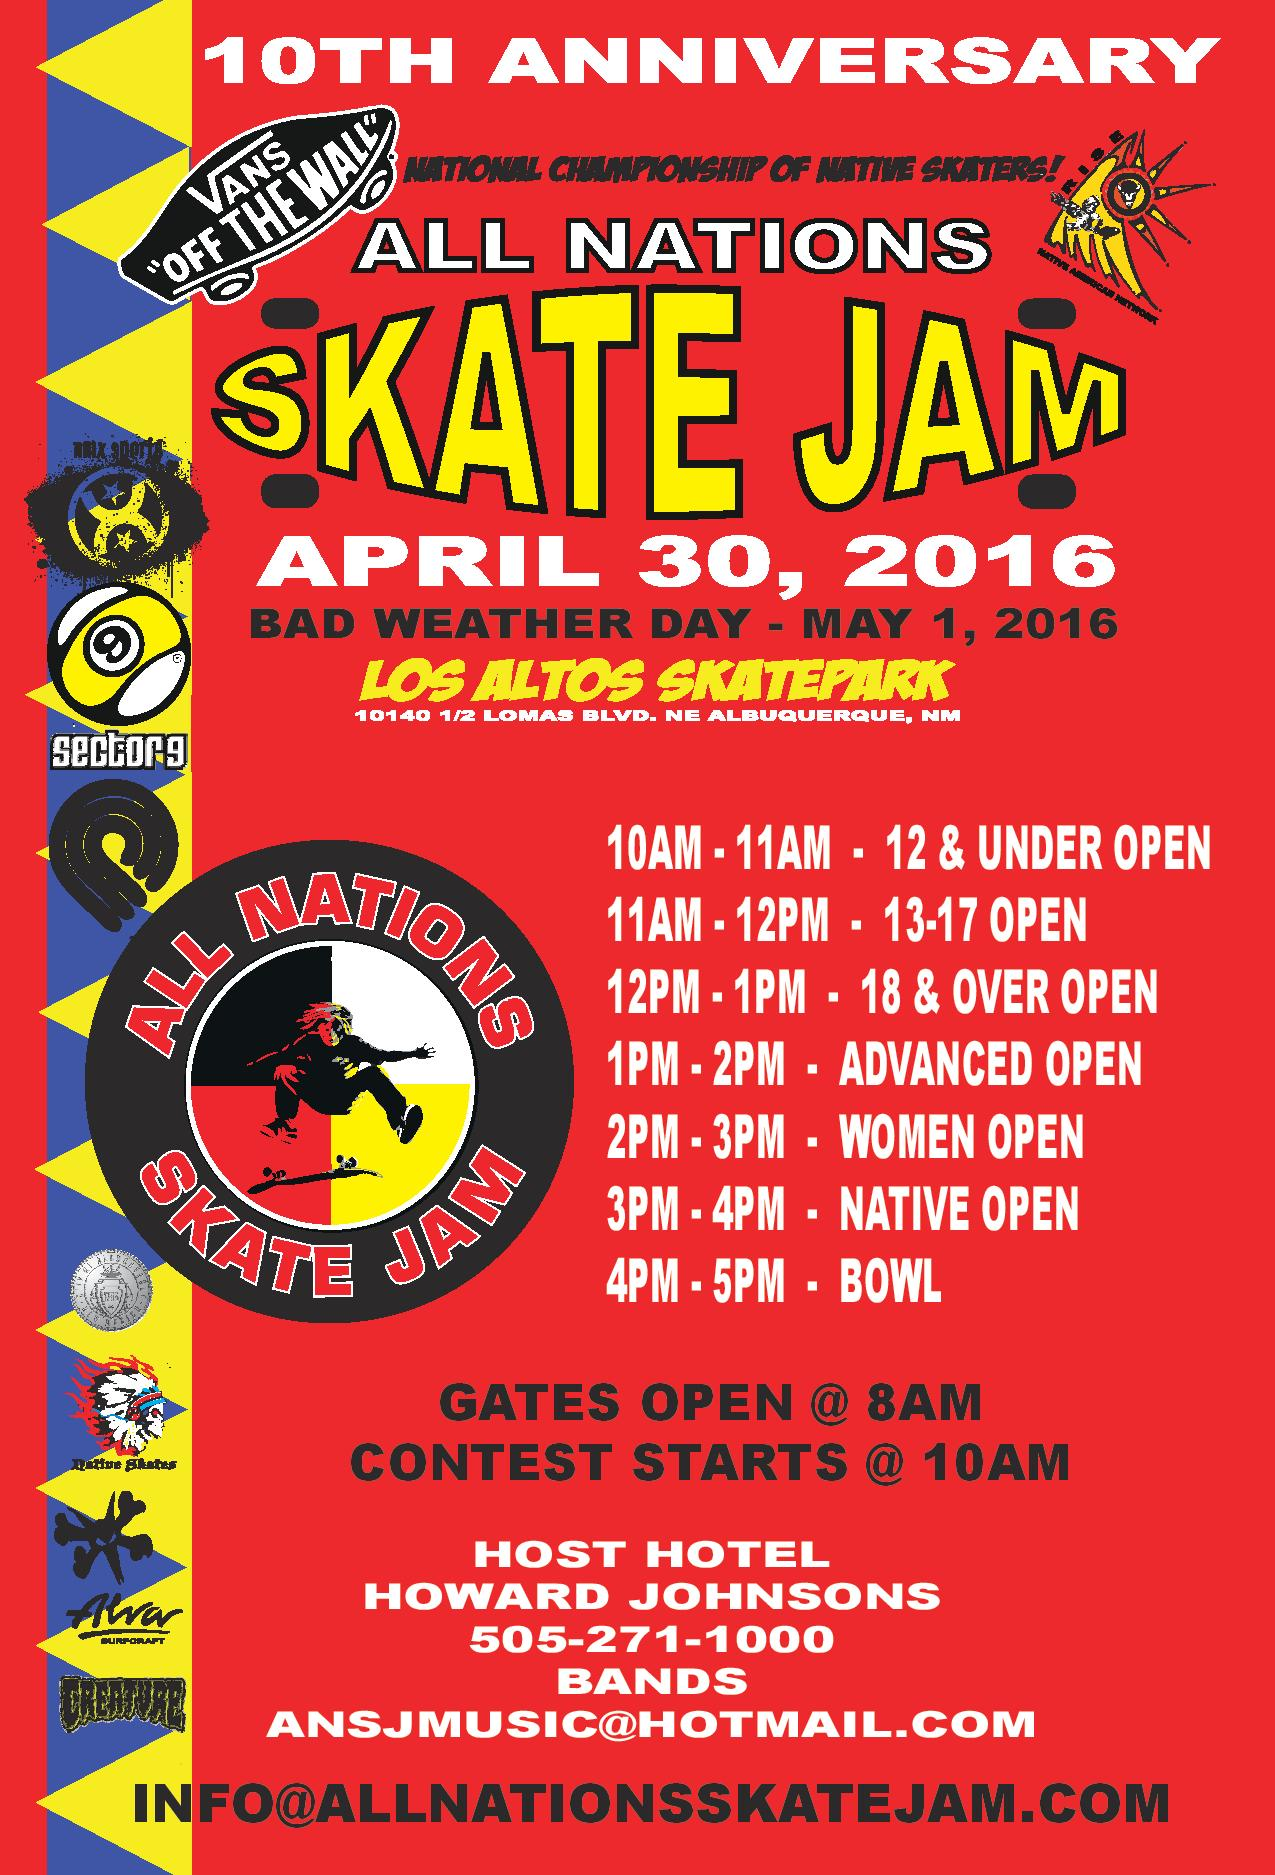 Albuquerque, NM – All Nations Skate Jam